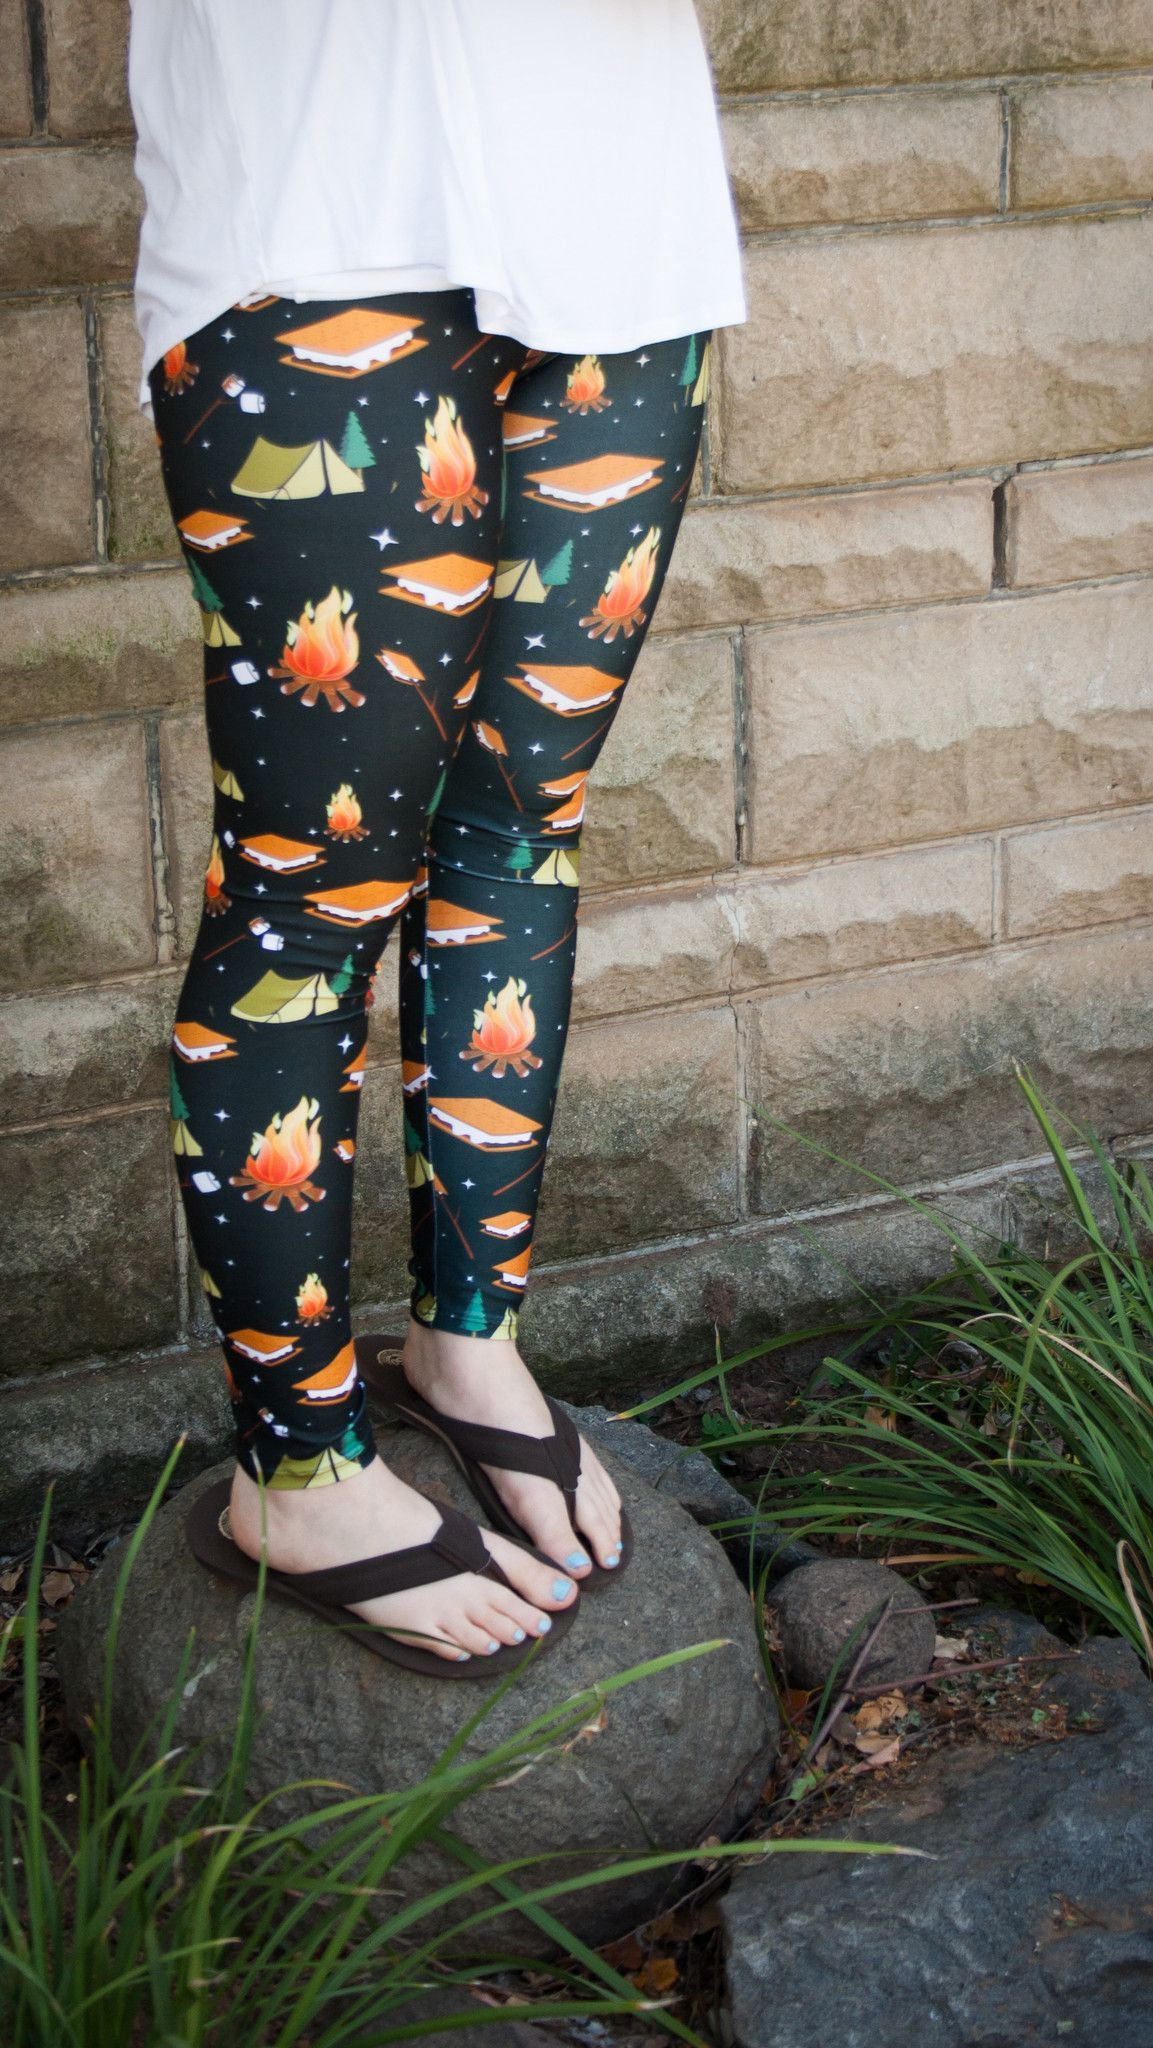 b11ce1c316c87 S'mores Around the Campfire printed camping leggings (with secret pocket!)